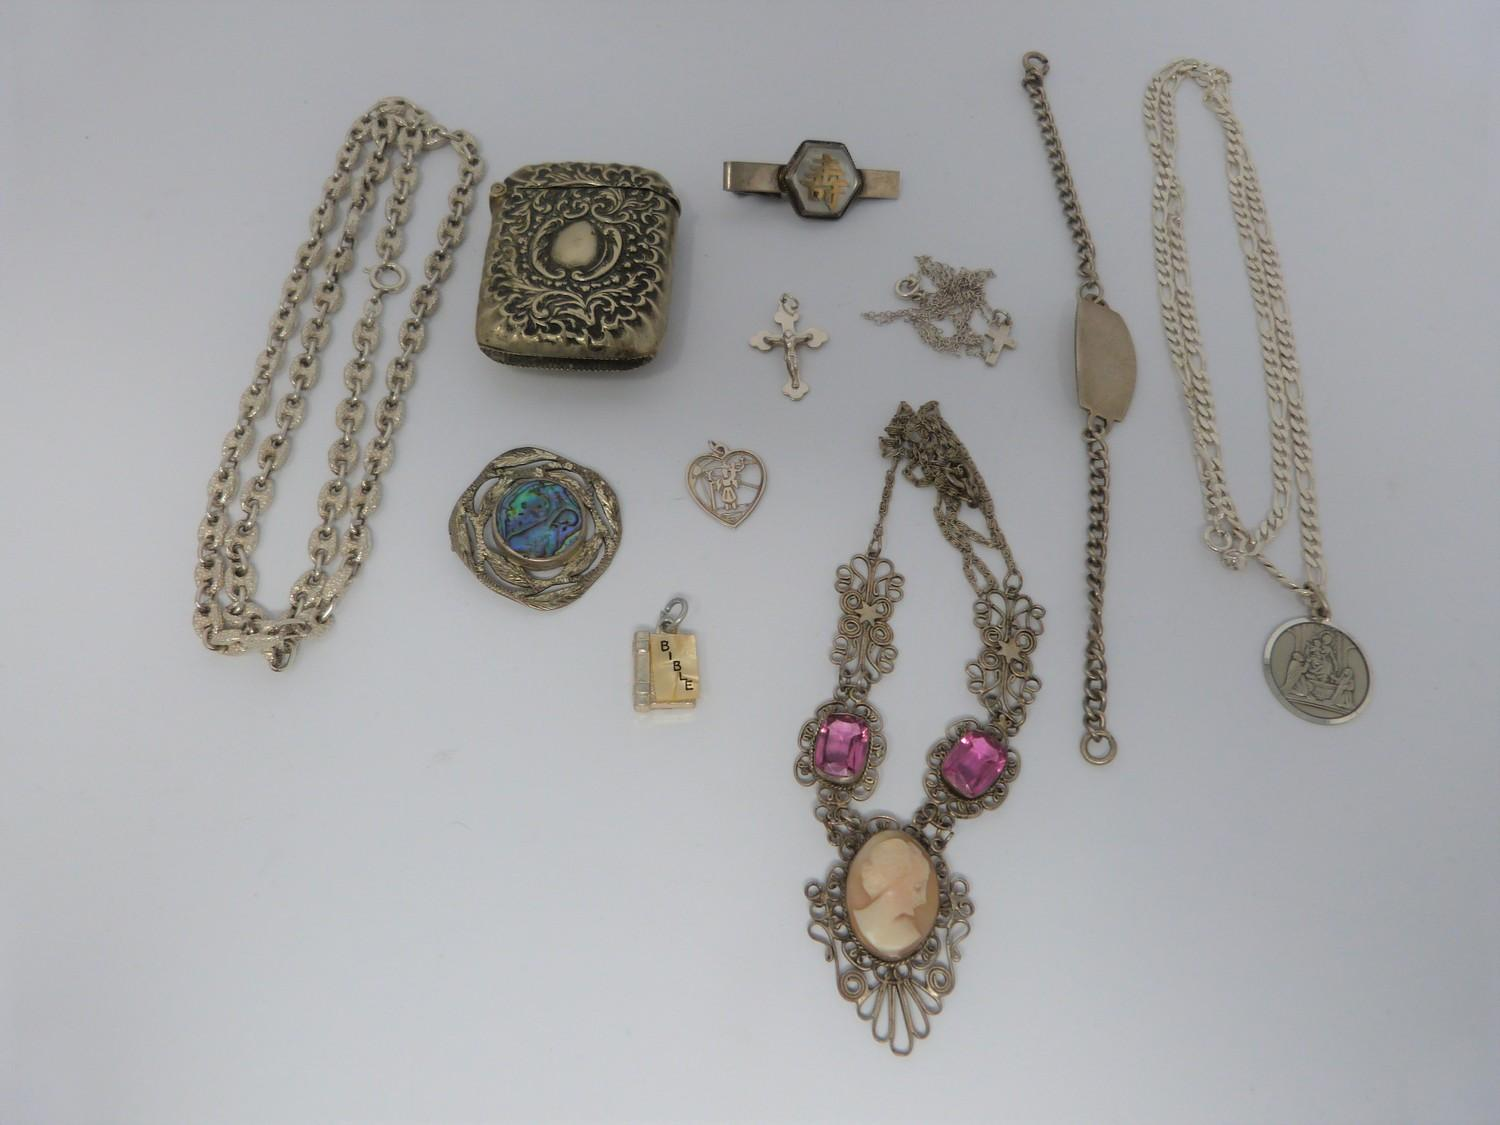 Collection of silver items, jewellery and white metal topped and collared walking cane, cameo and - Image 6 of 9